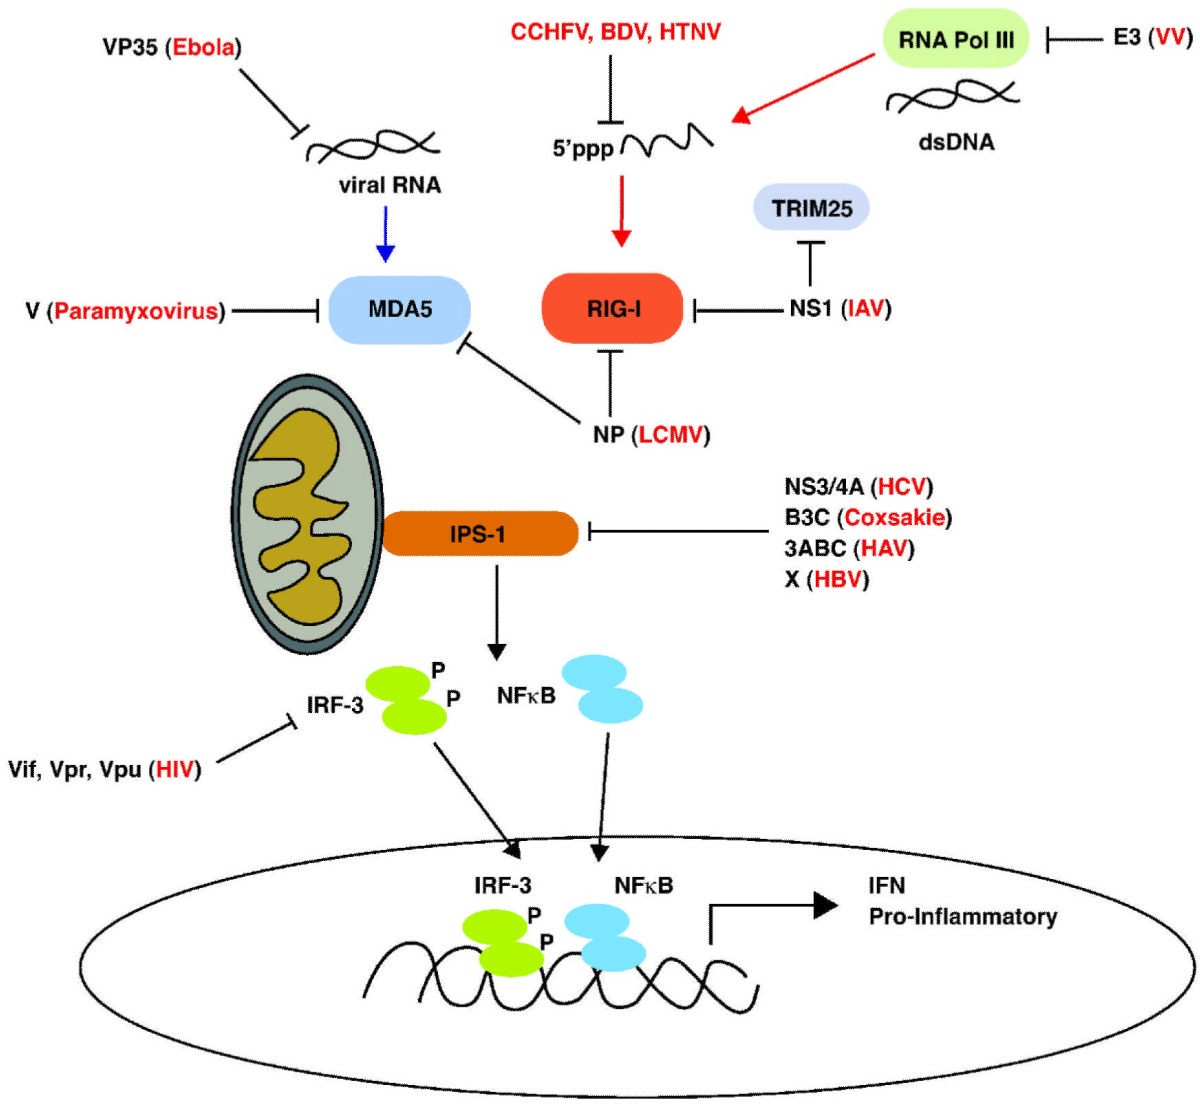 Source: RIG-I Like Receptors and Their Signaling Crosstalk in the Regulation of Antiviral Immunity. Ramos and Gale (2011).